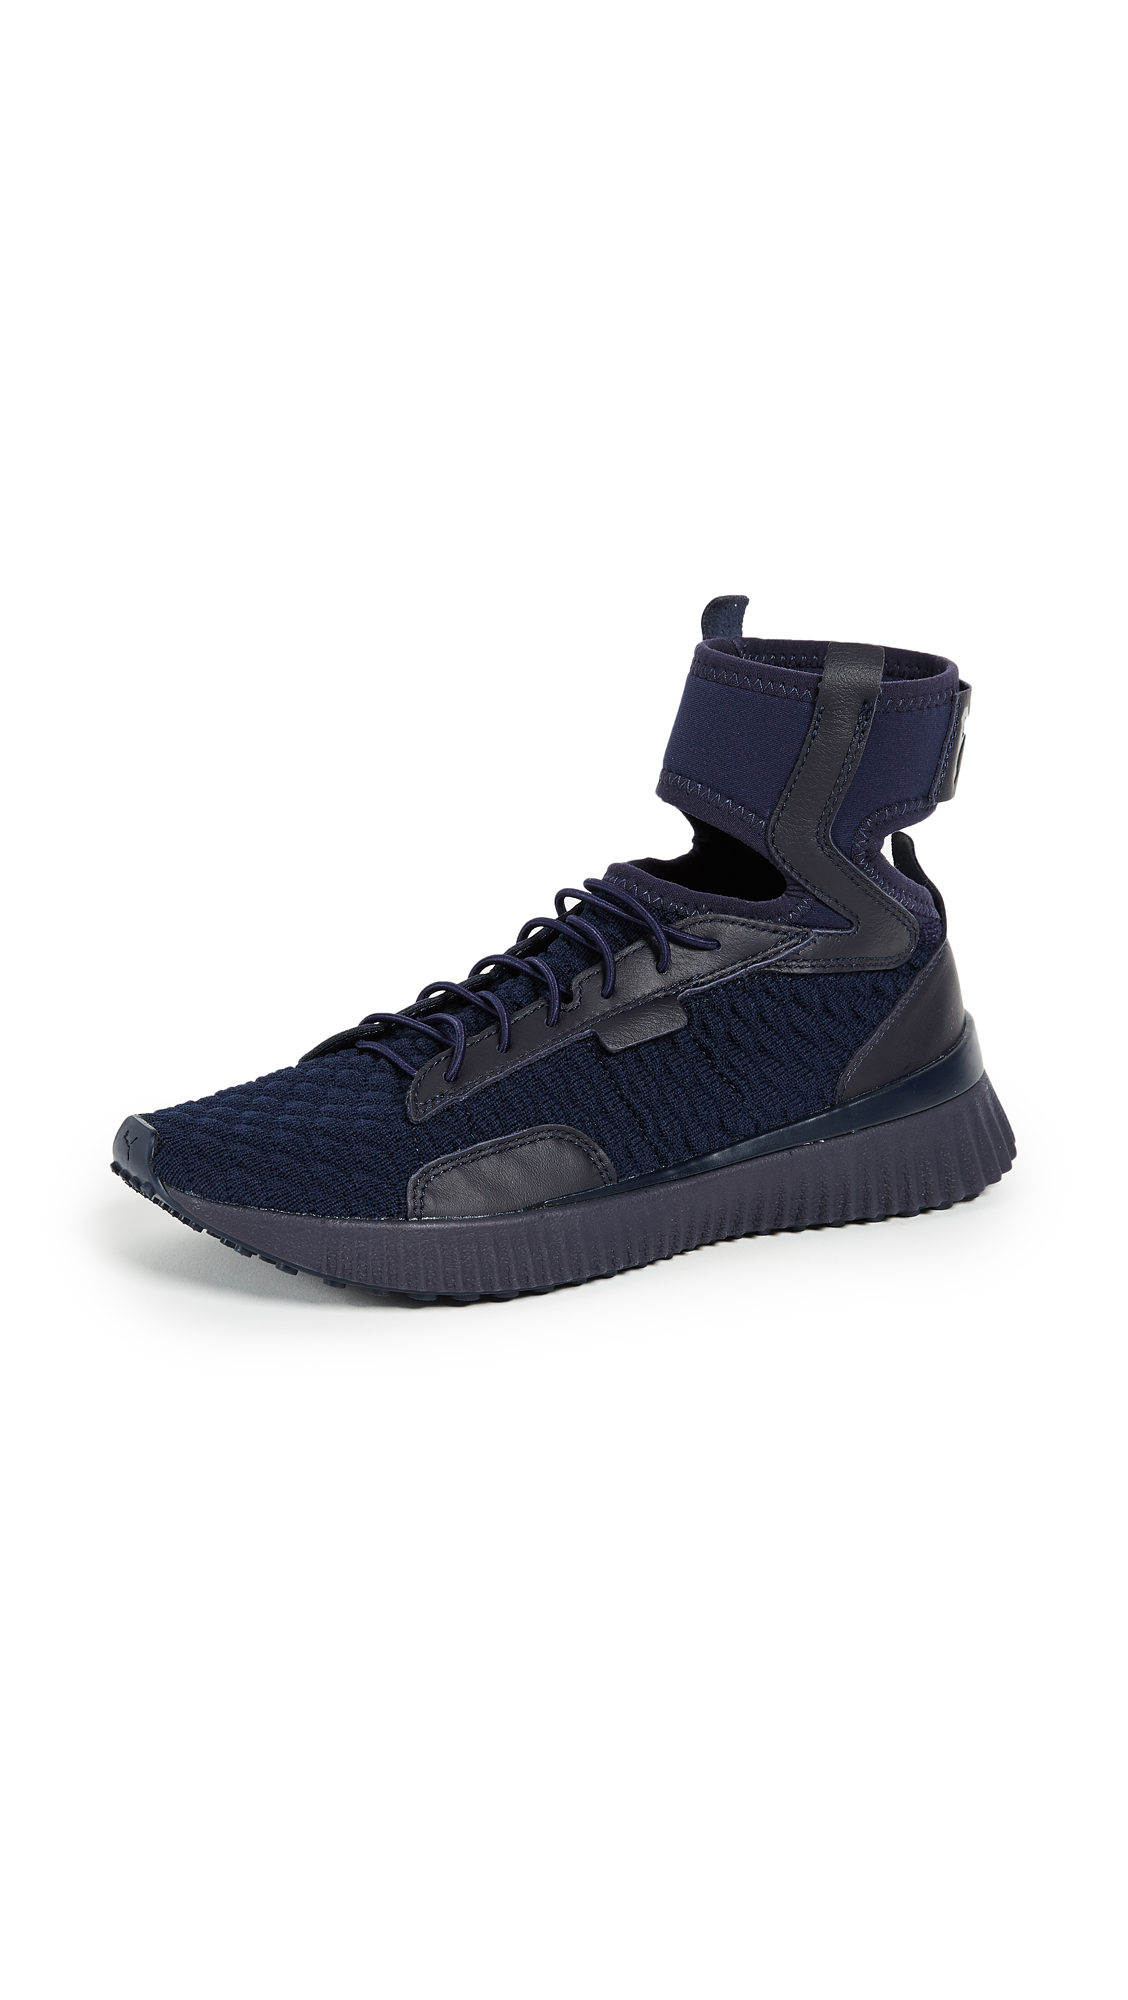 PUMA FENTY x PUMA Trainer Mid Geo Sneakers - Evening Blue/Puma Black